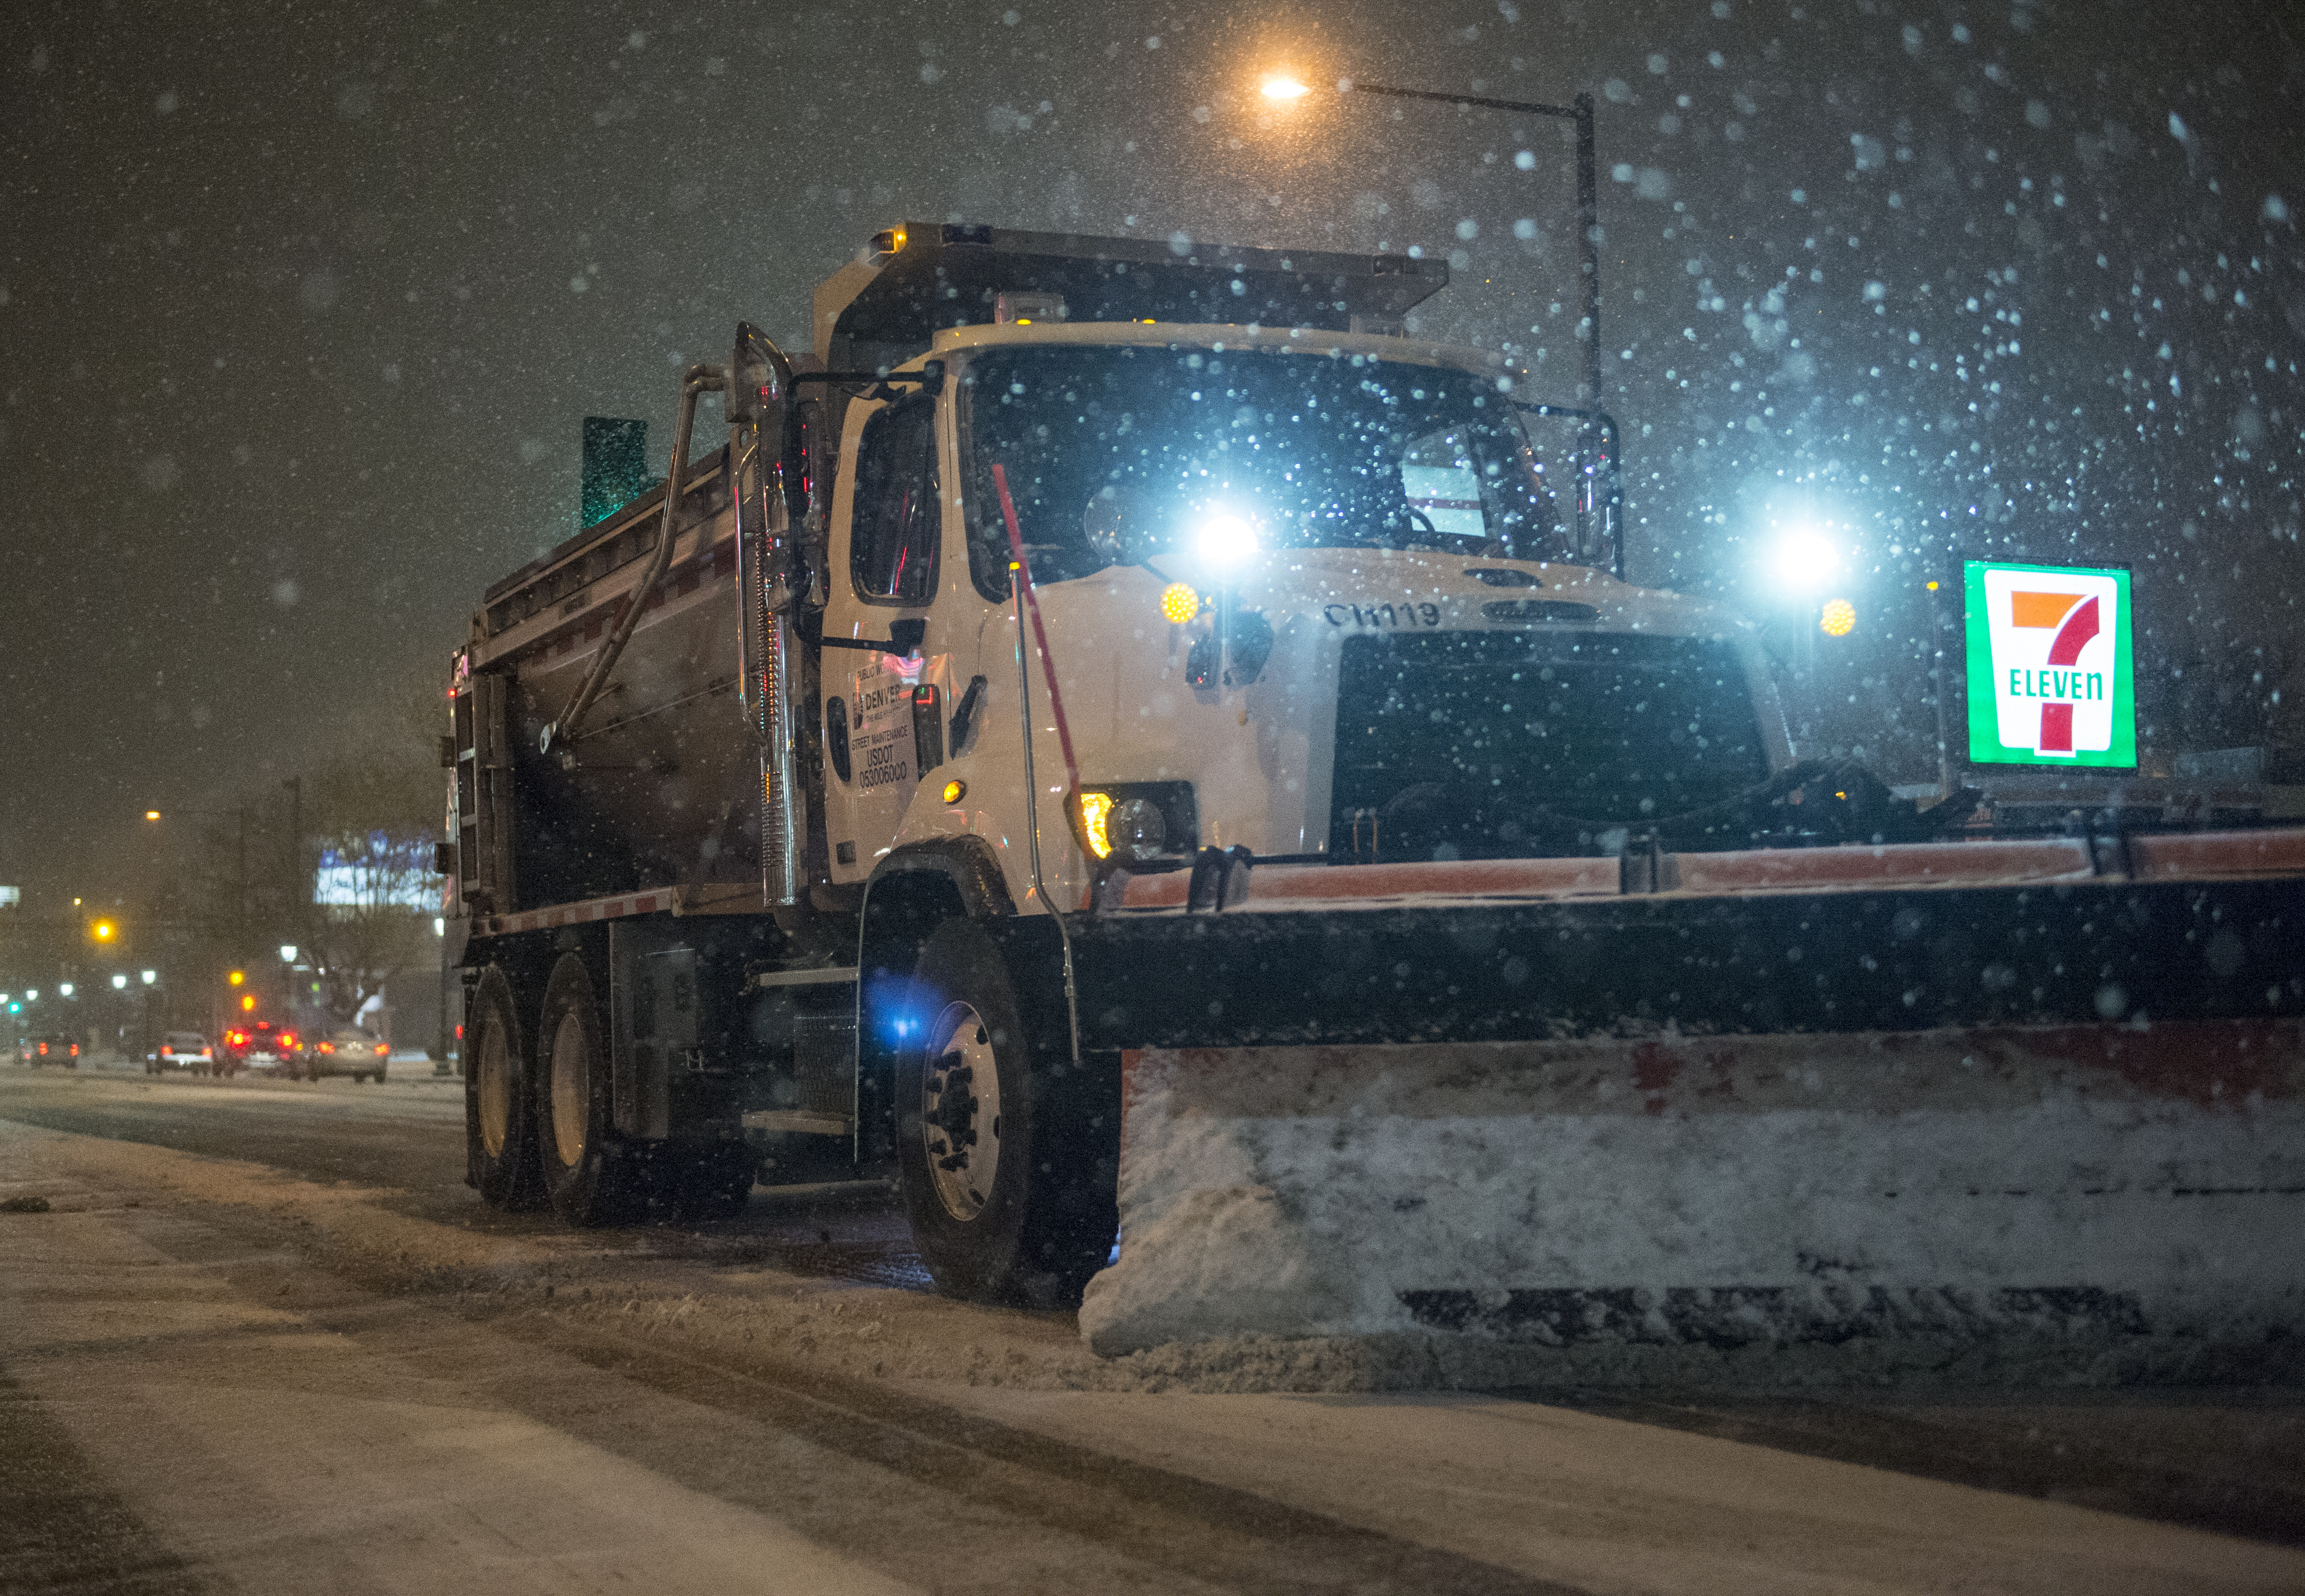 A snow plow clears the streets on Dec. 24, 2014 in Denver.